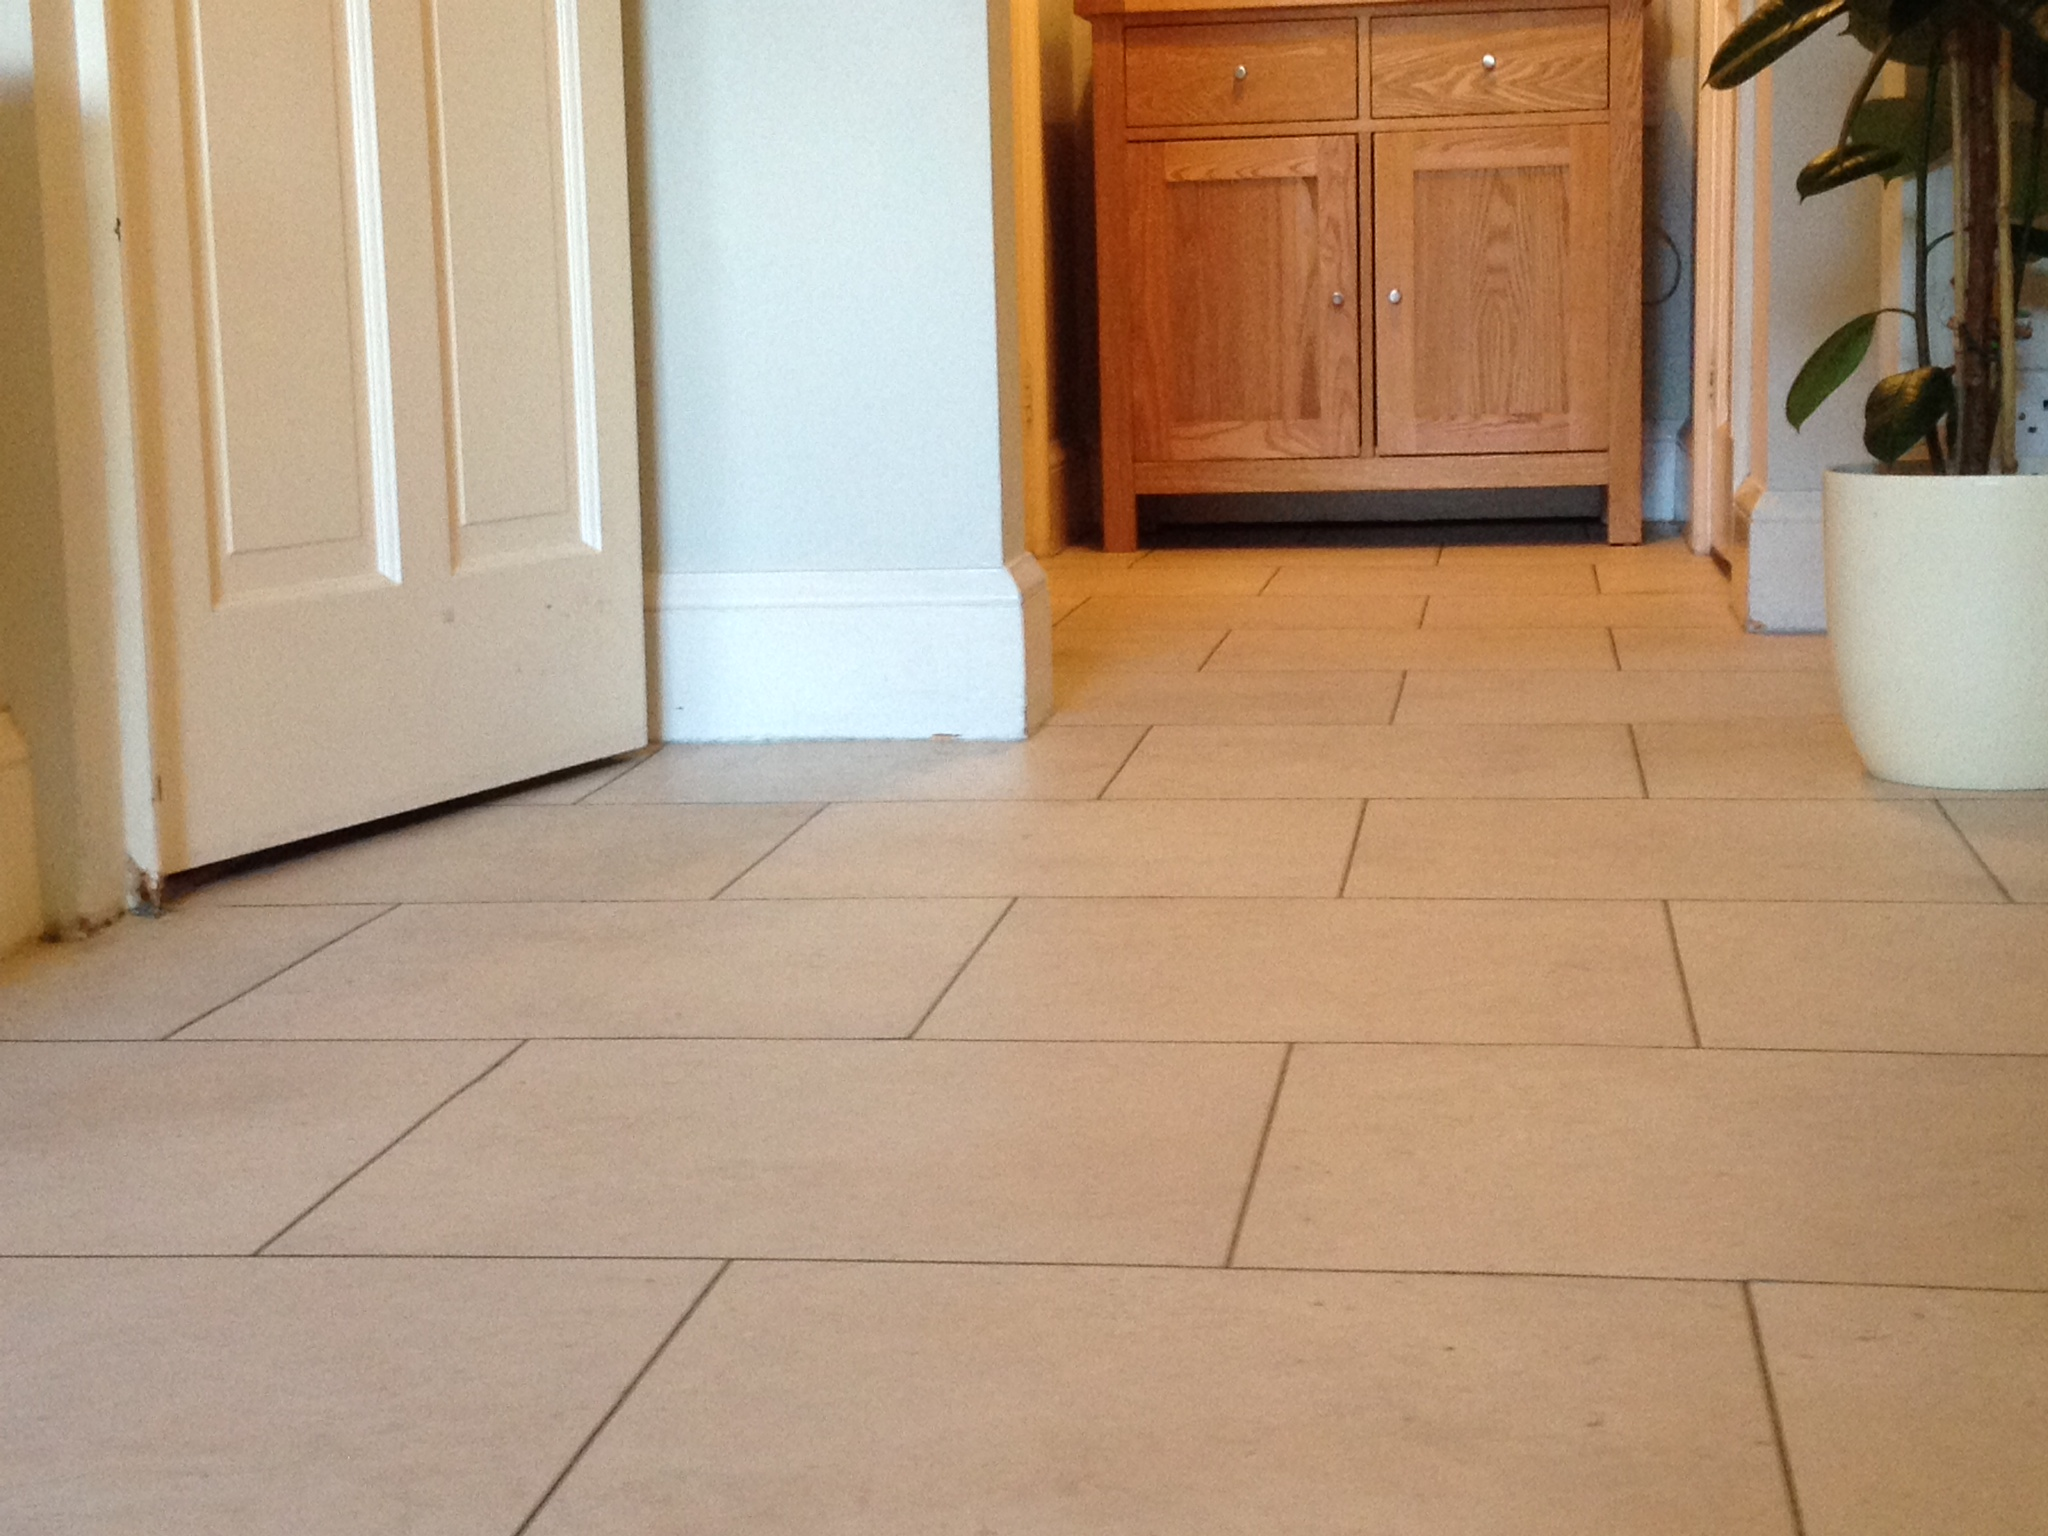 Colonia flooring - Natural Limestone & Graphite feature strips  (3).jpeg